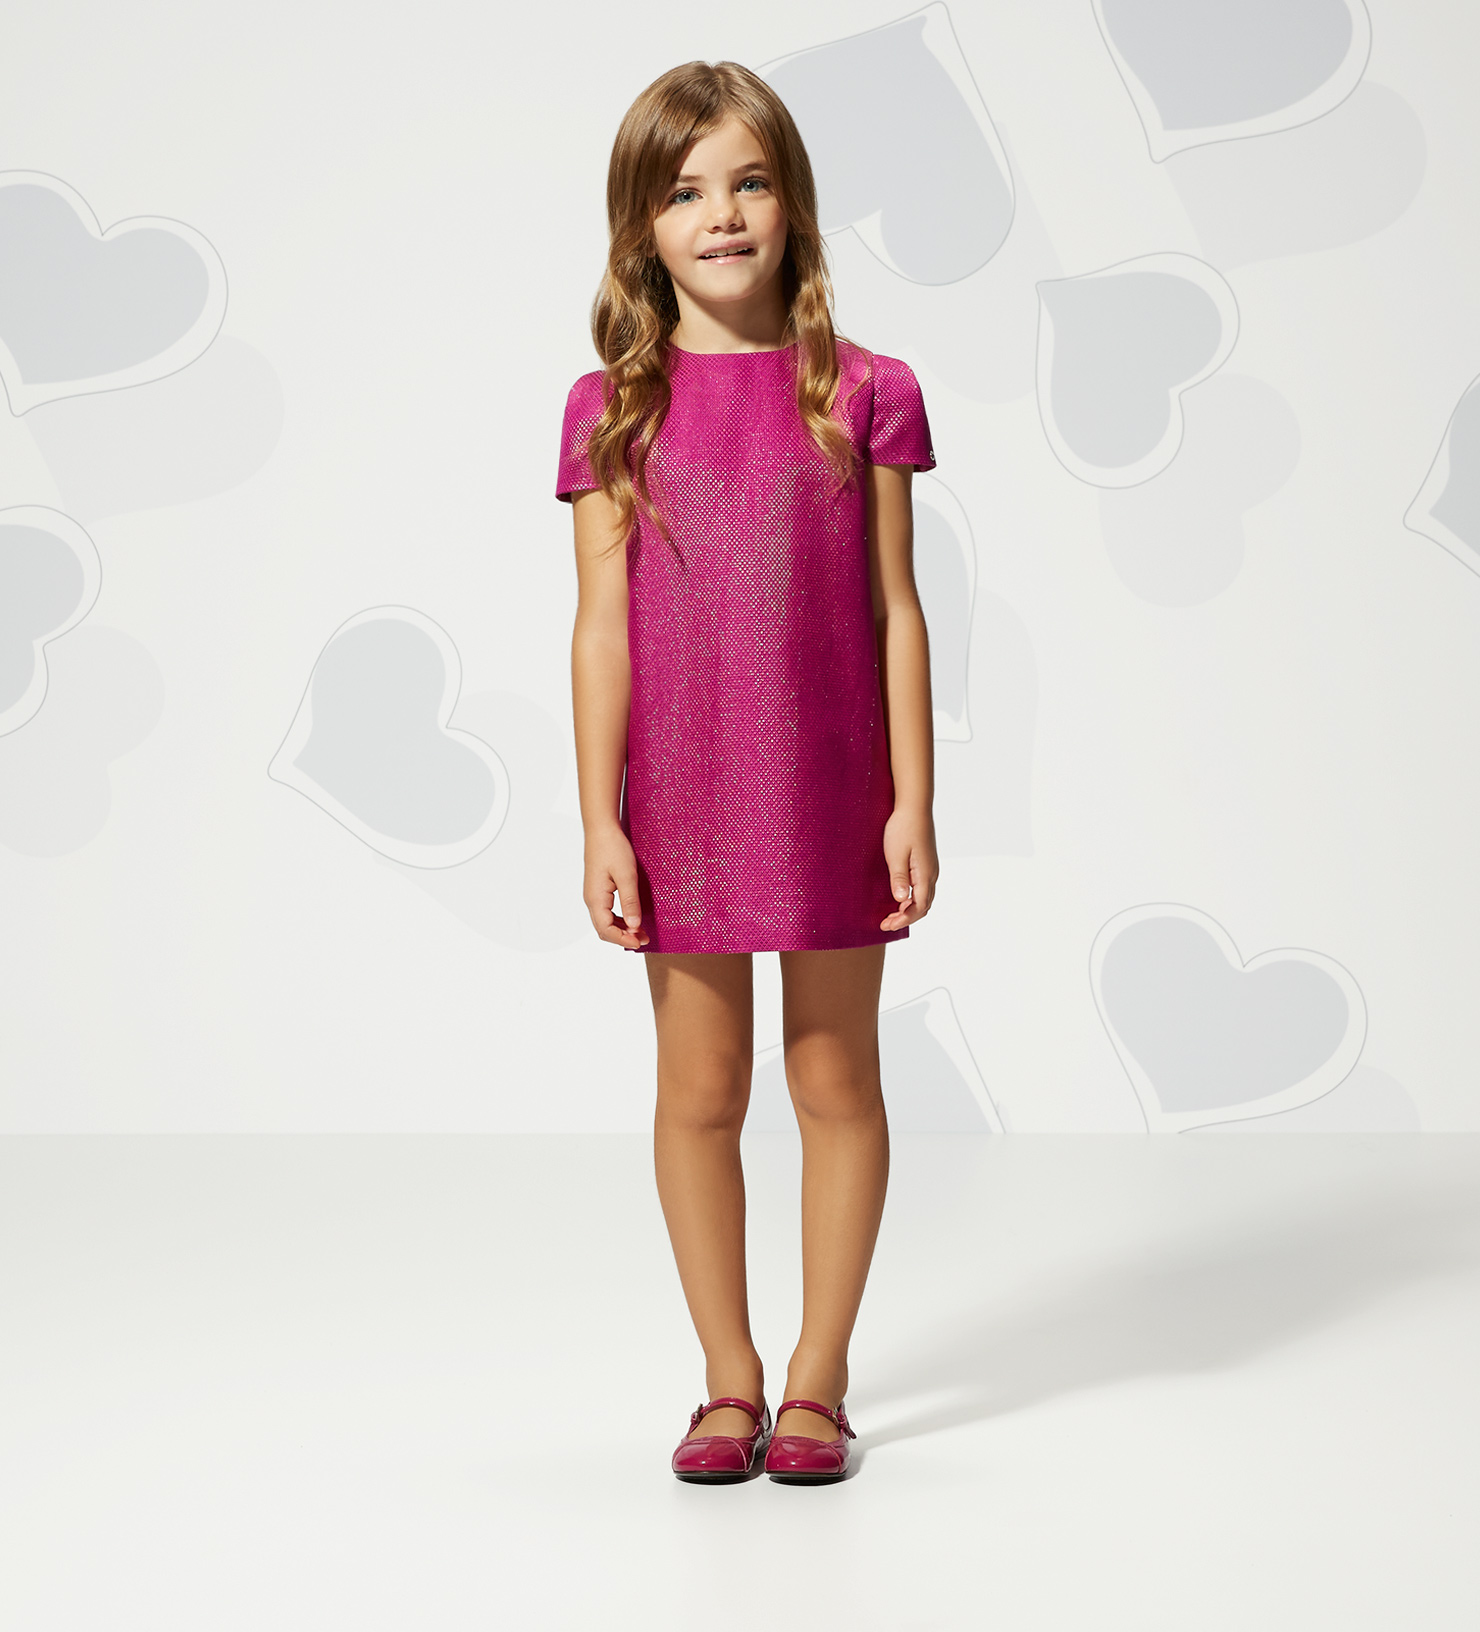 Holiday Girls Dresses Gucci Fuchsia and Gold Diamond ...